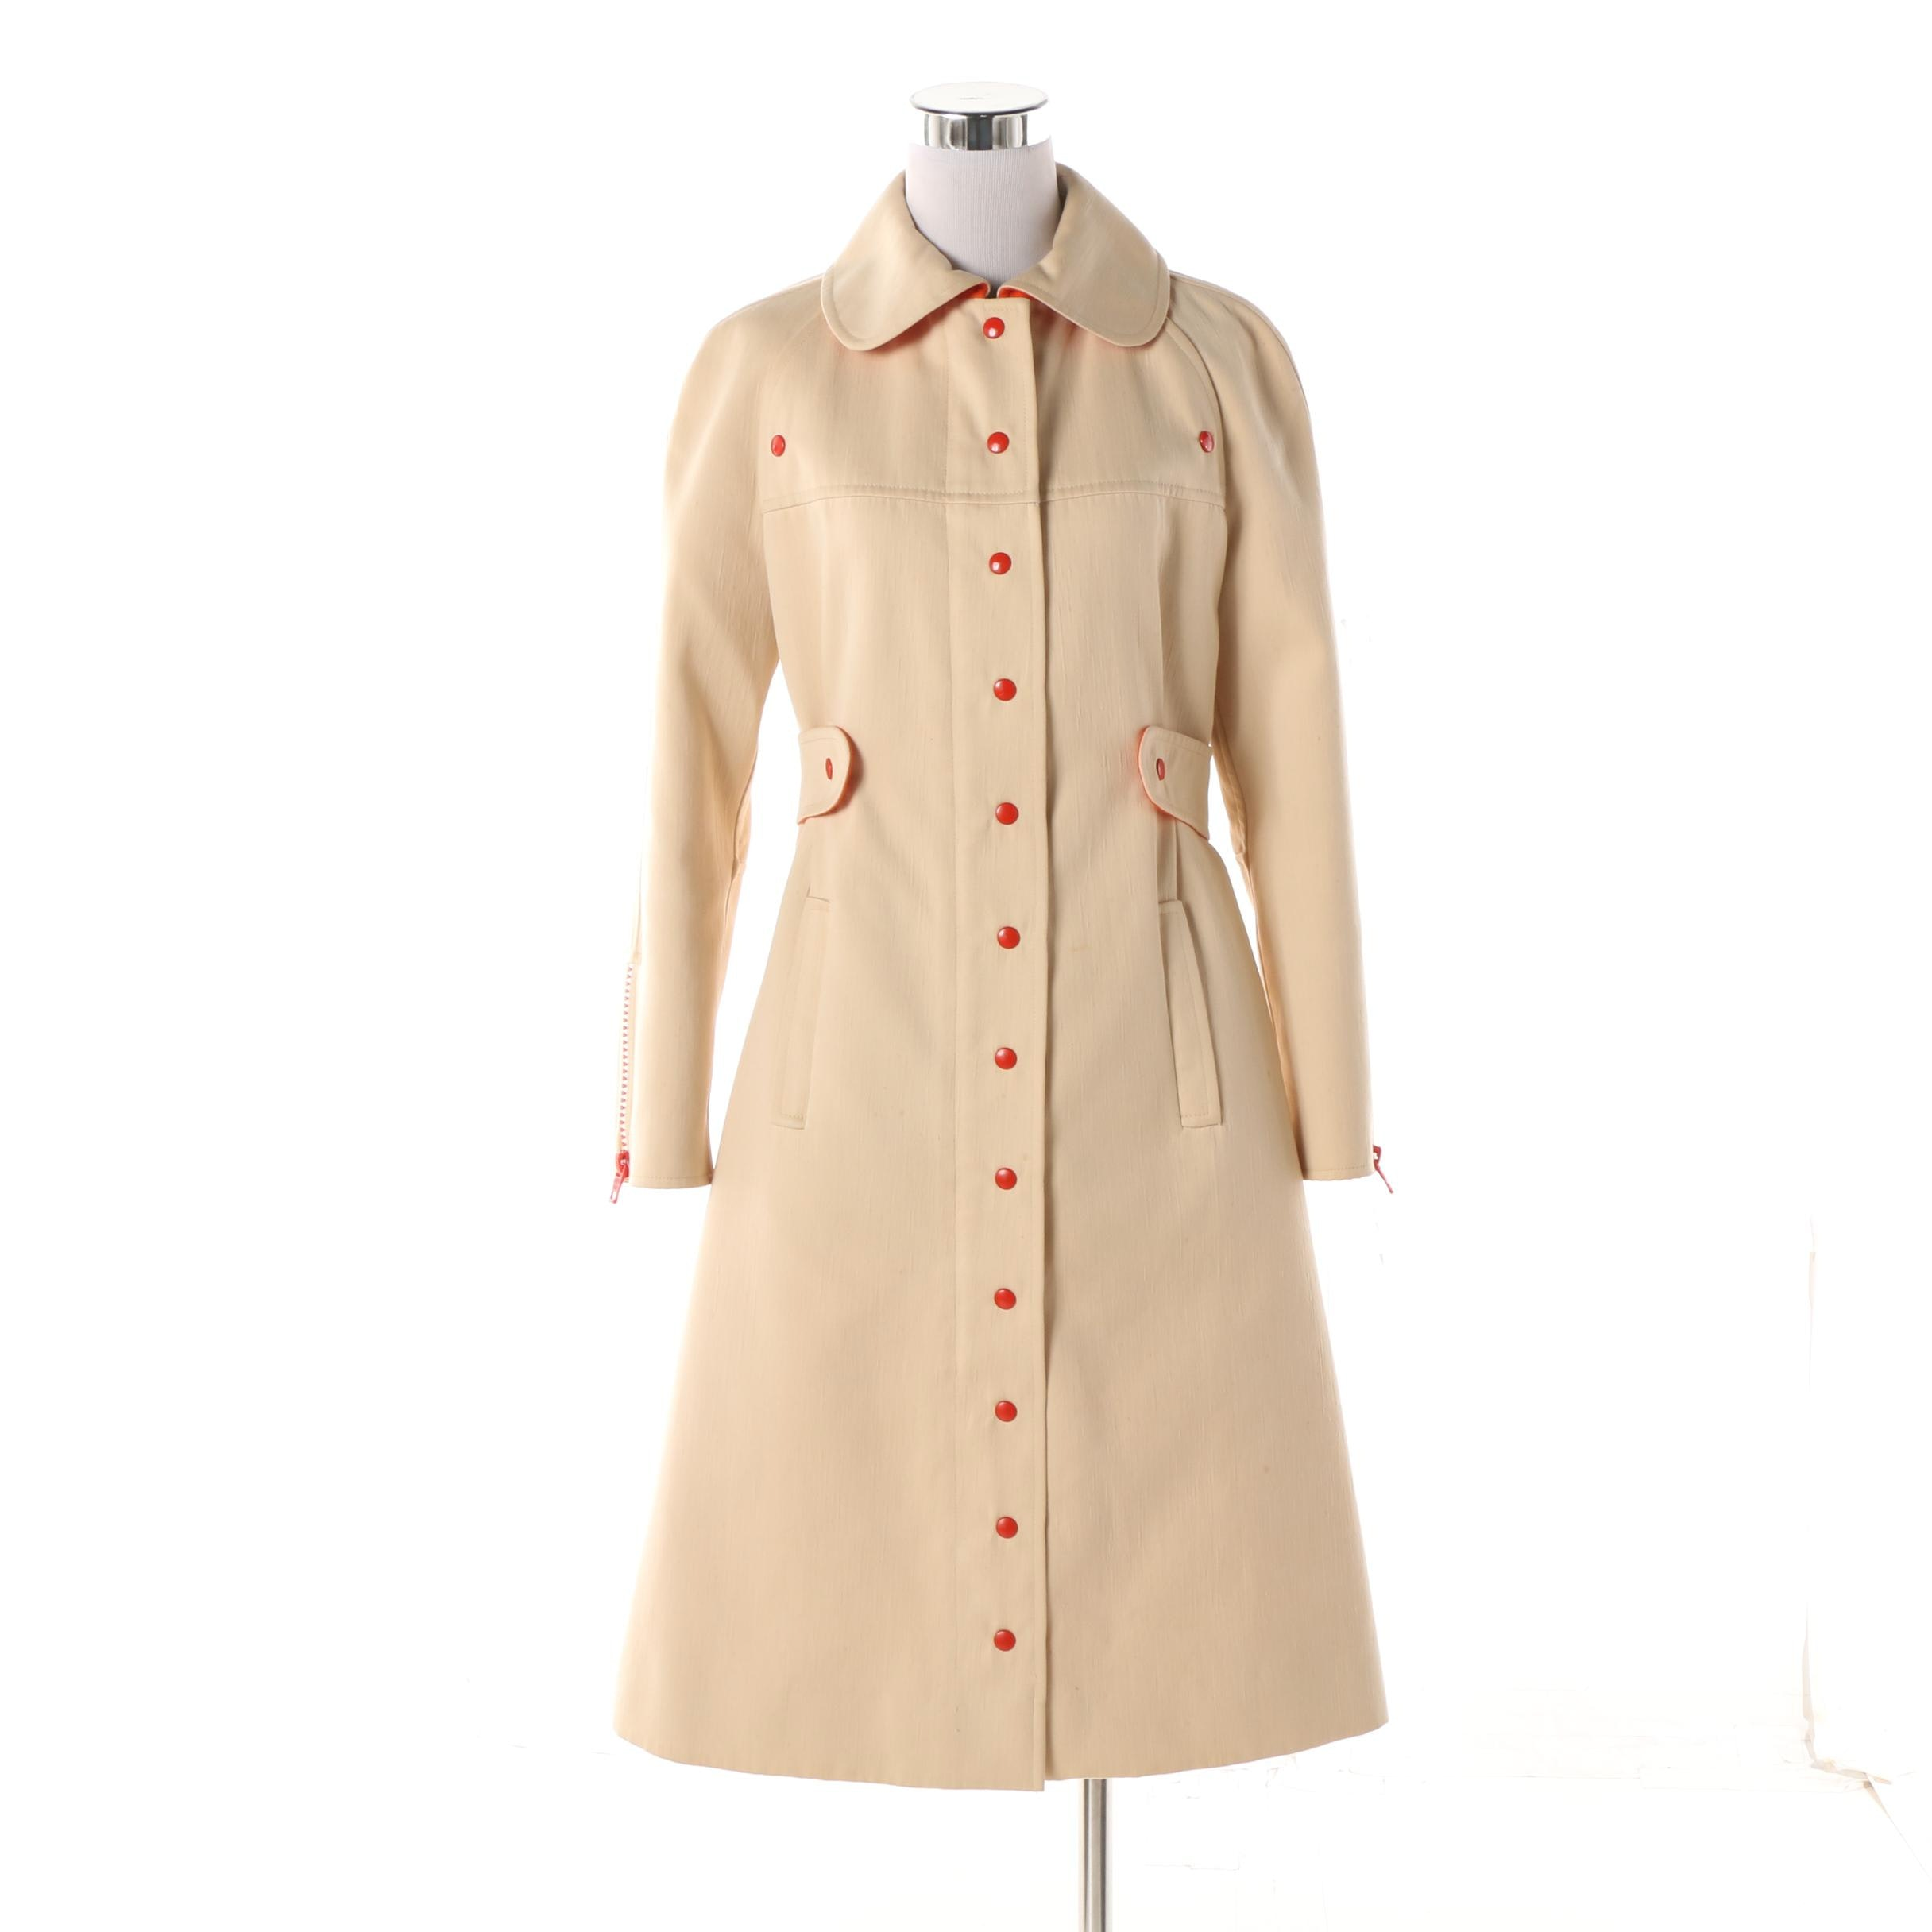 Women's Circa 1960s Vintage Courrèges Paris Cream and Orange Princess Coat